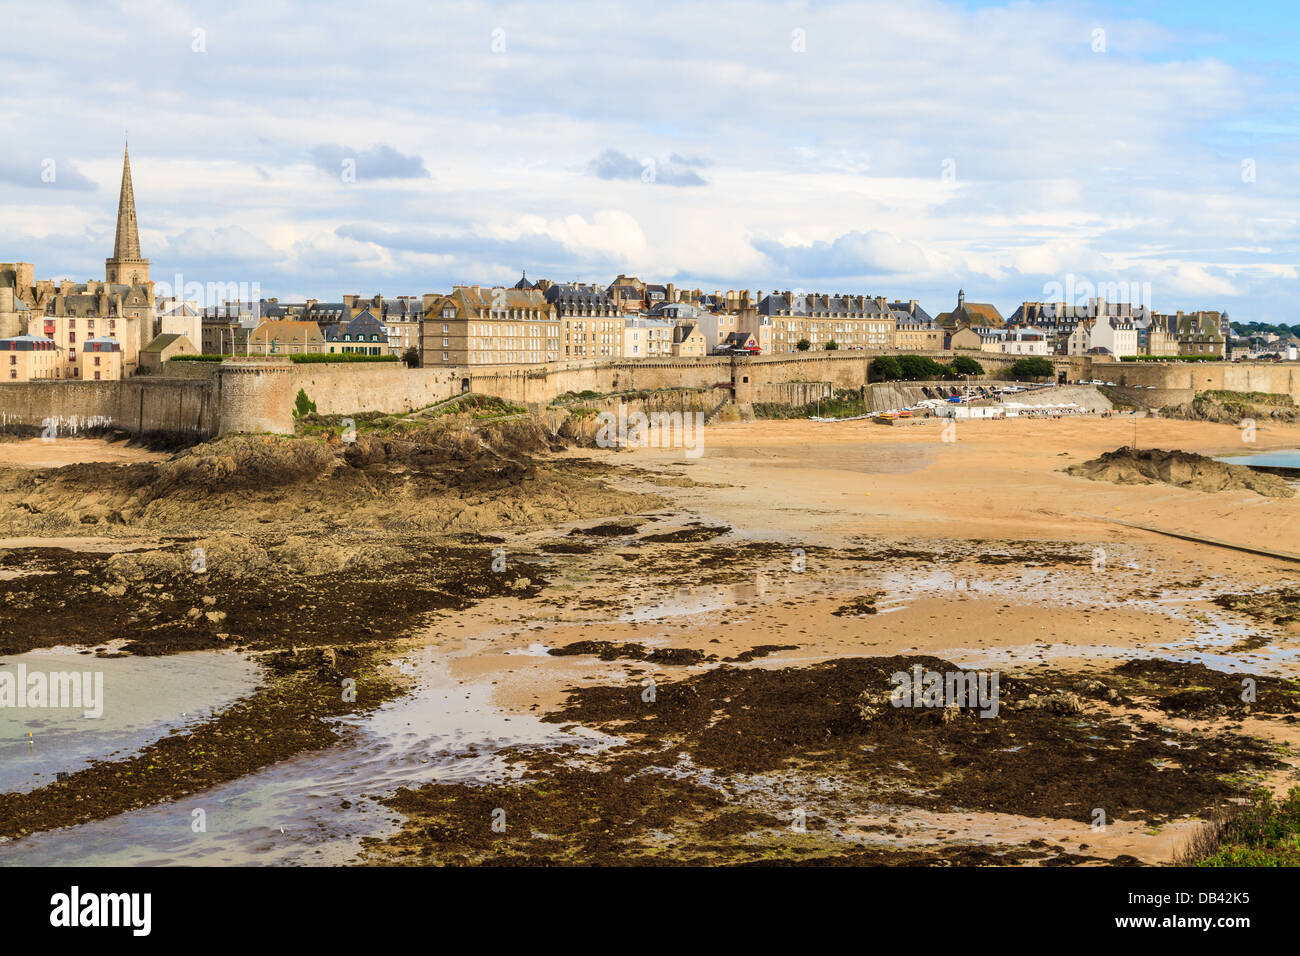 Saint Malo View on City Walls, Brittany, France - Stock Image